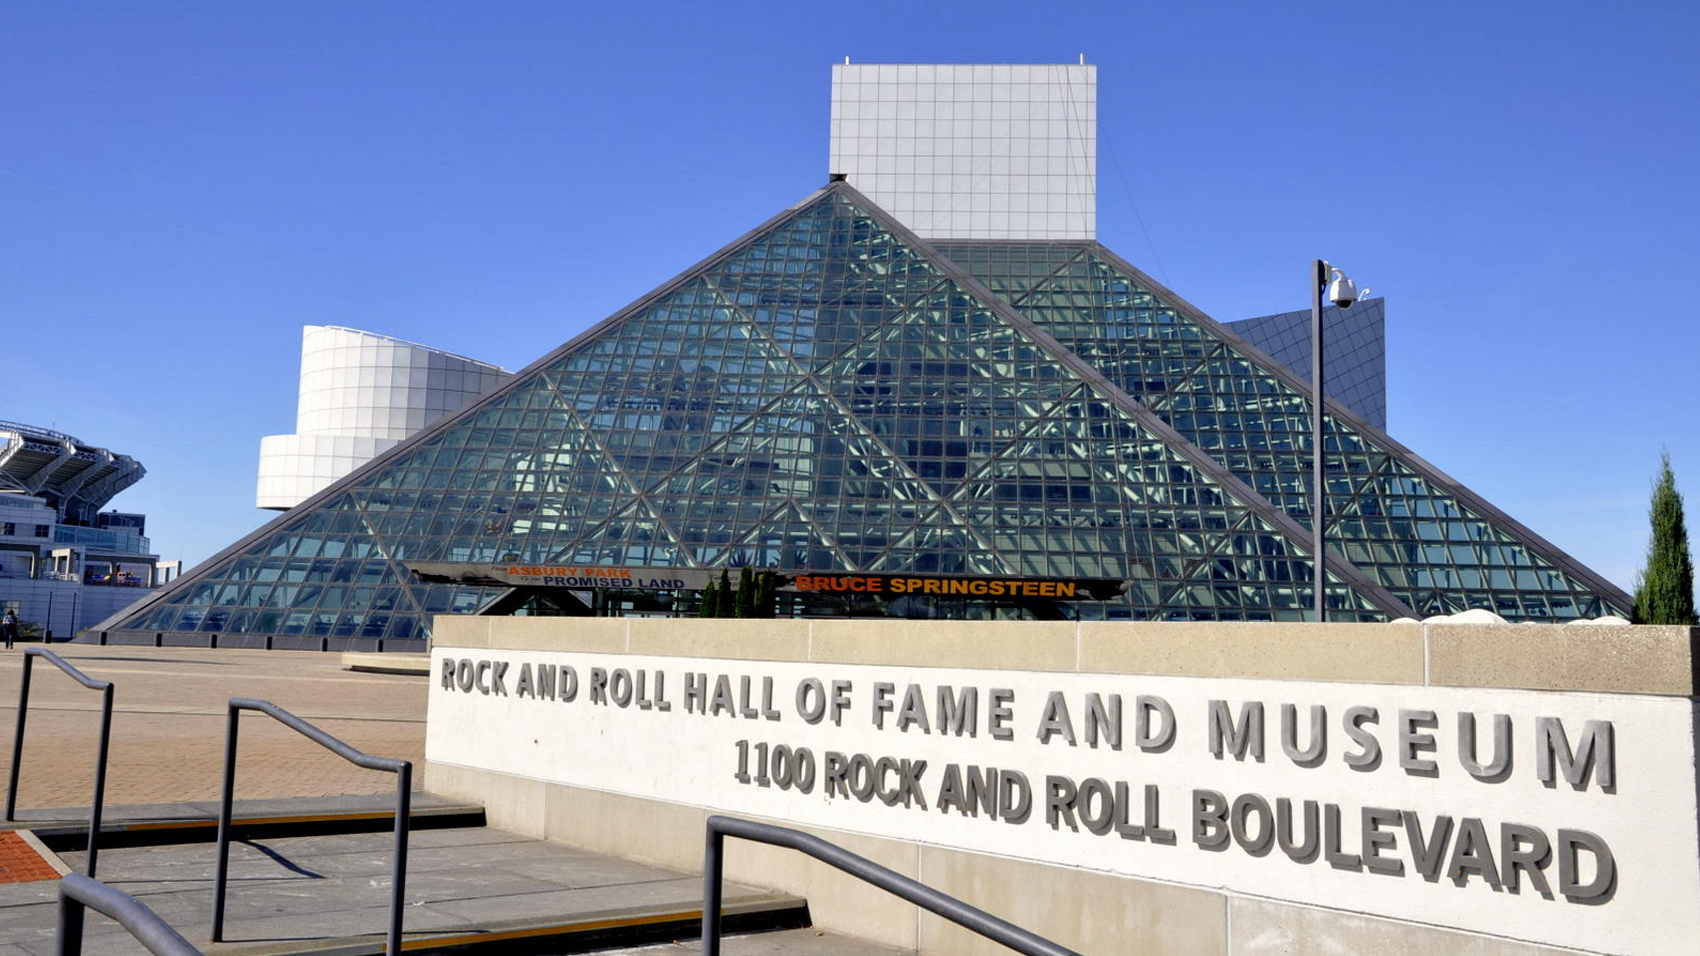 Cleveland rock and roll hall of fame